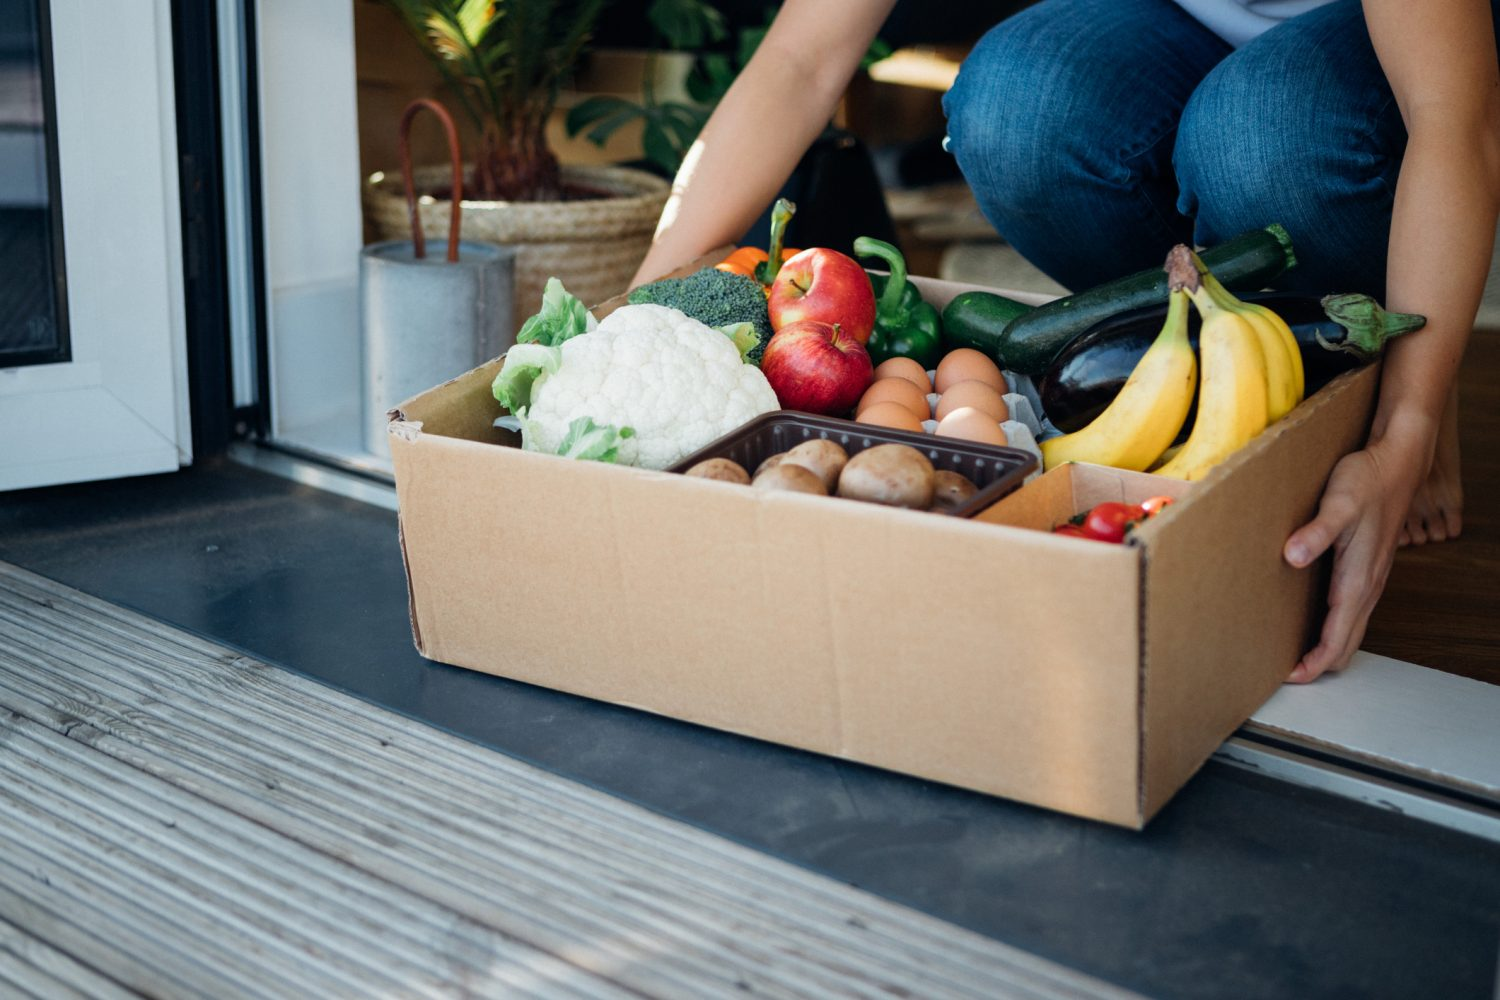 How to utilise meal kit delivery services to set you up for success Image